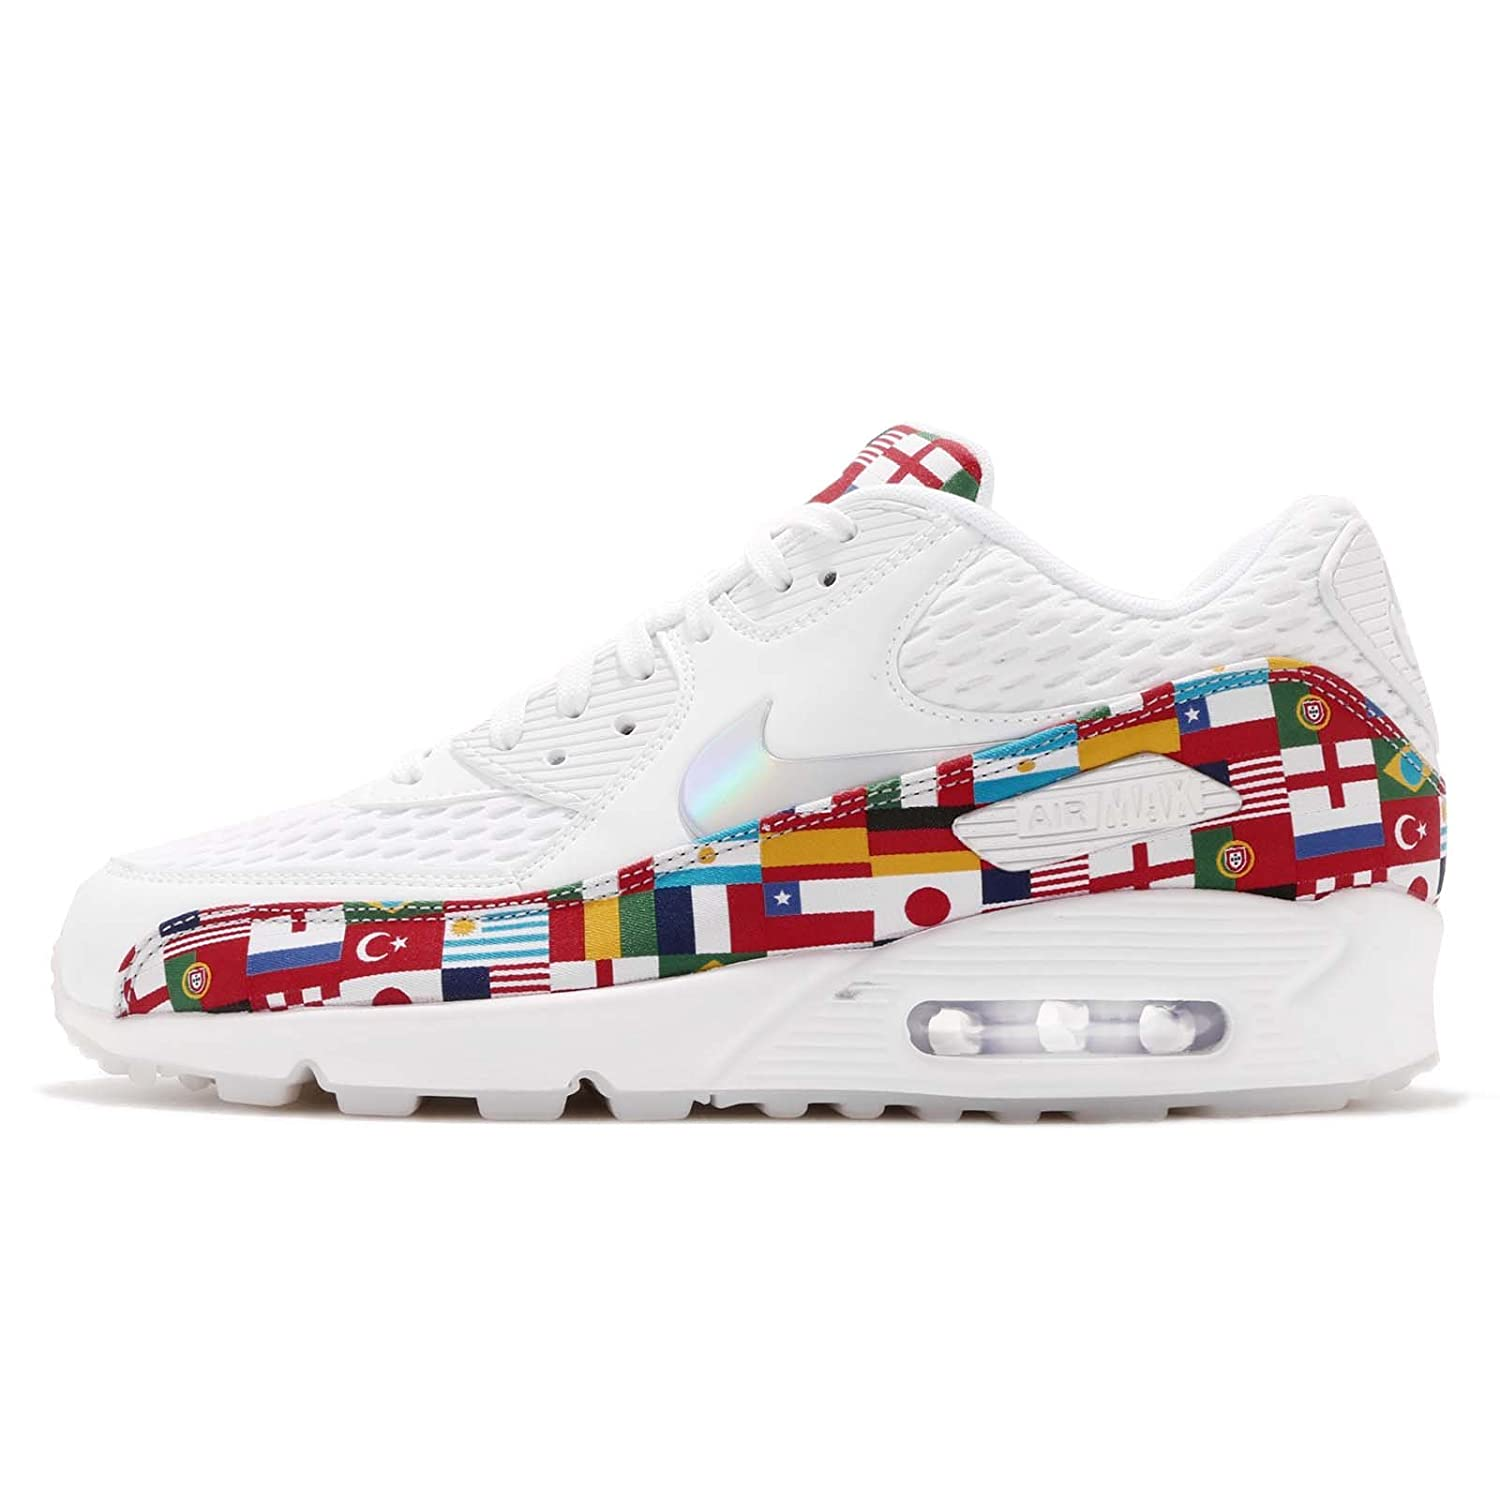 best website da8e7 d9c38 Amazon.com | Nike Air Max 90 Nic Qs 'International Flag Pack' - Ao5119-100  - Size 11.5 White, Multi-Color | Shoes